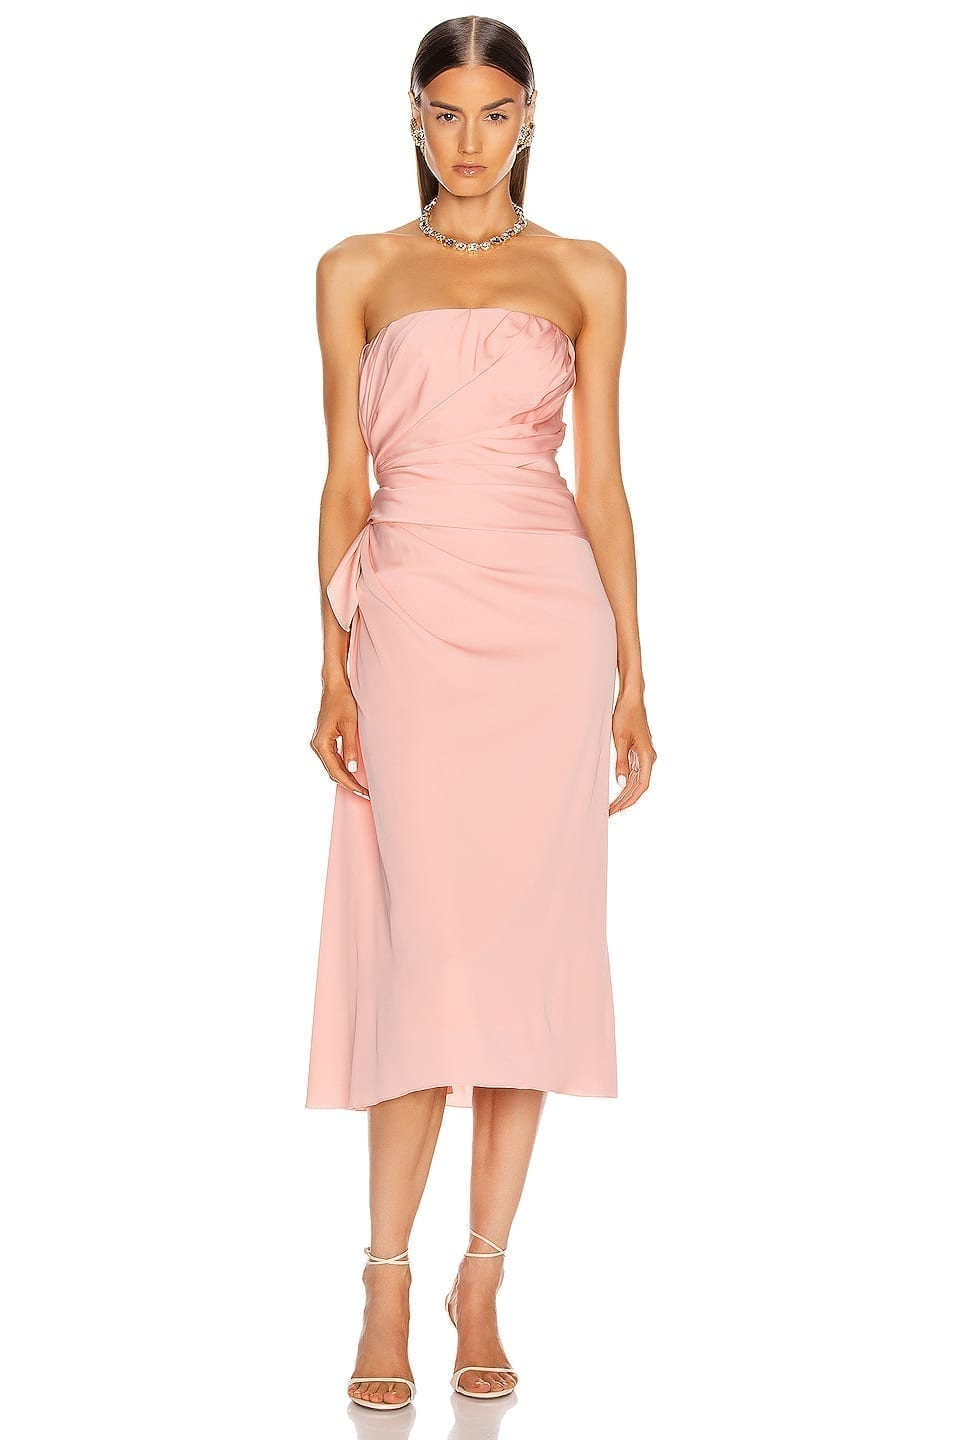 DOLCE & GABBANA Strapless Midi Dress